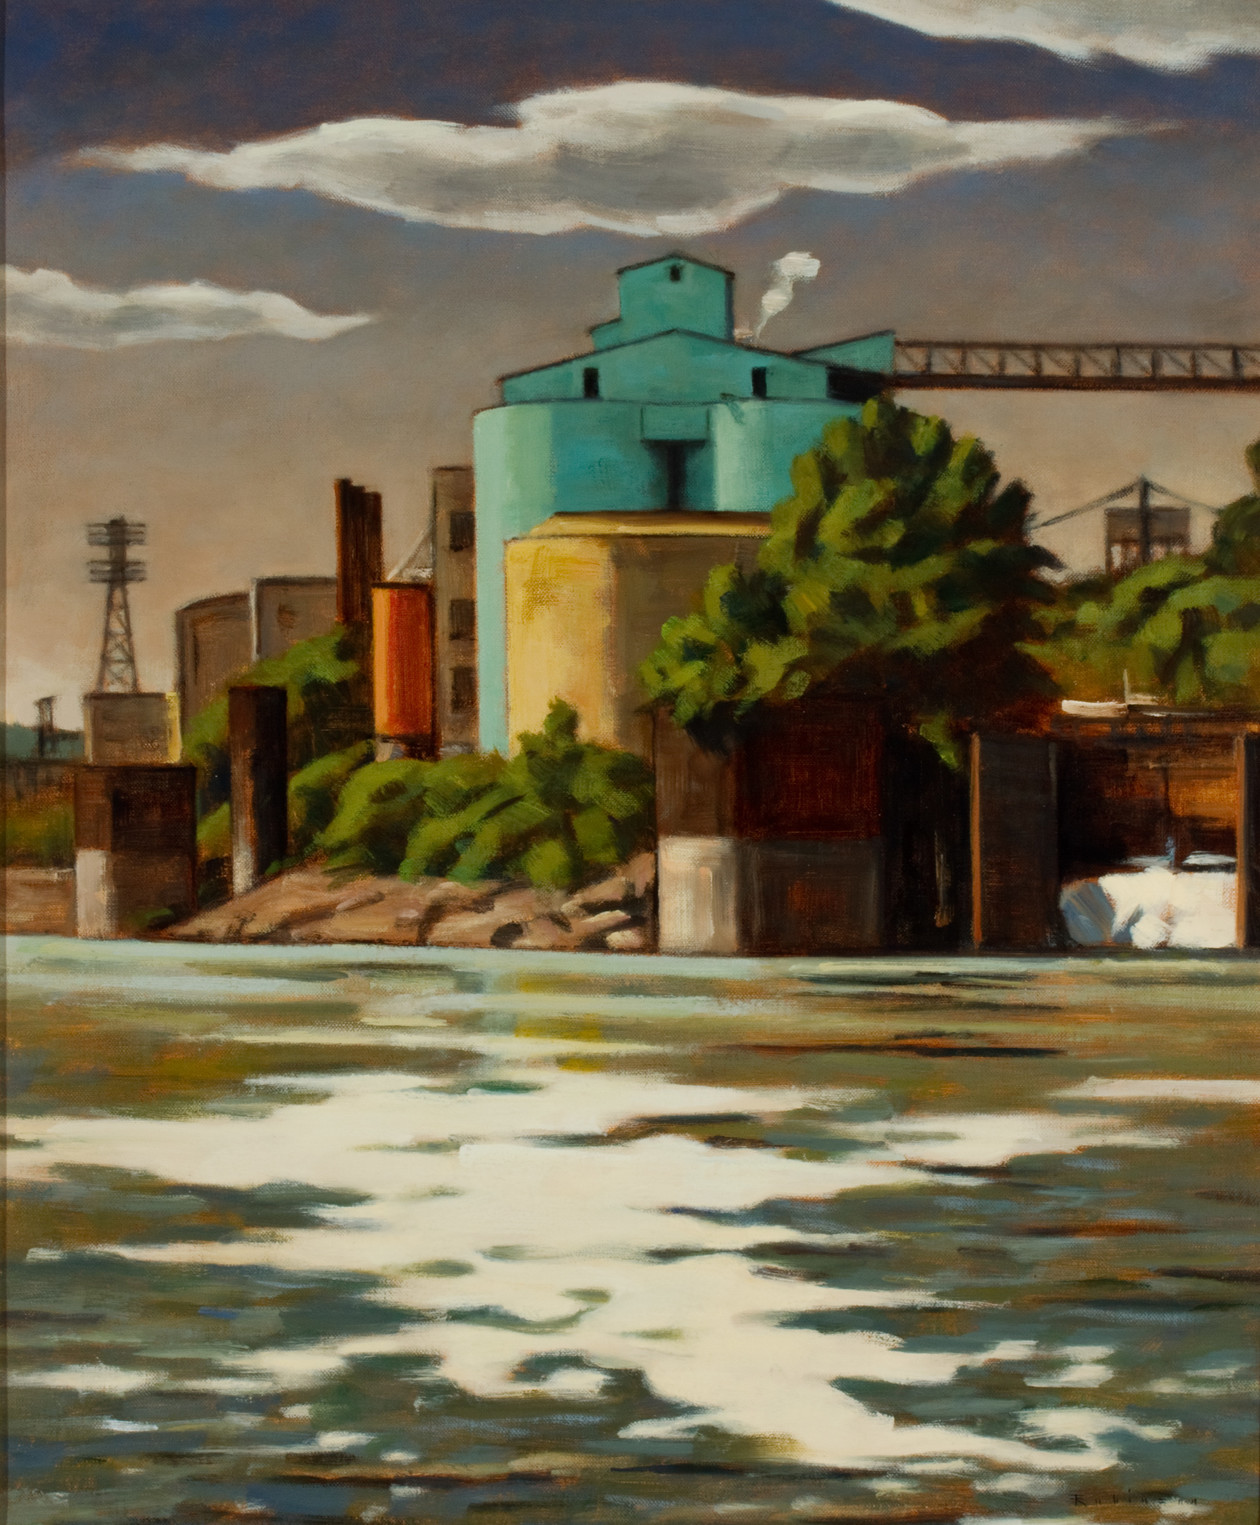 Water and Cylinders (2013) by Daniel Robinson